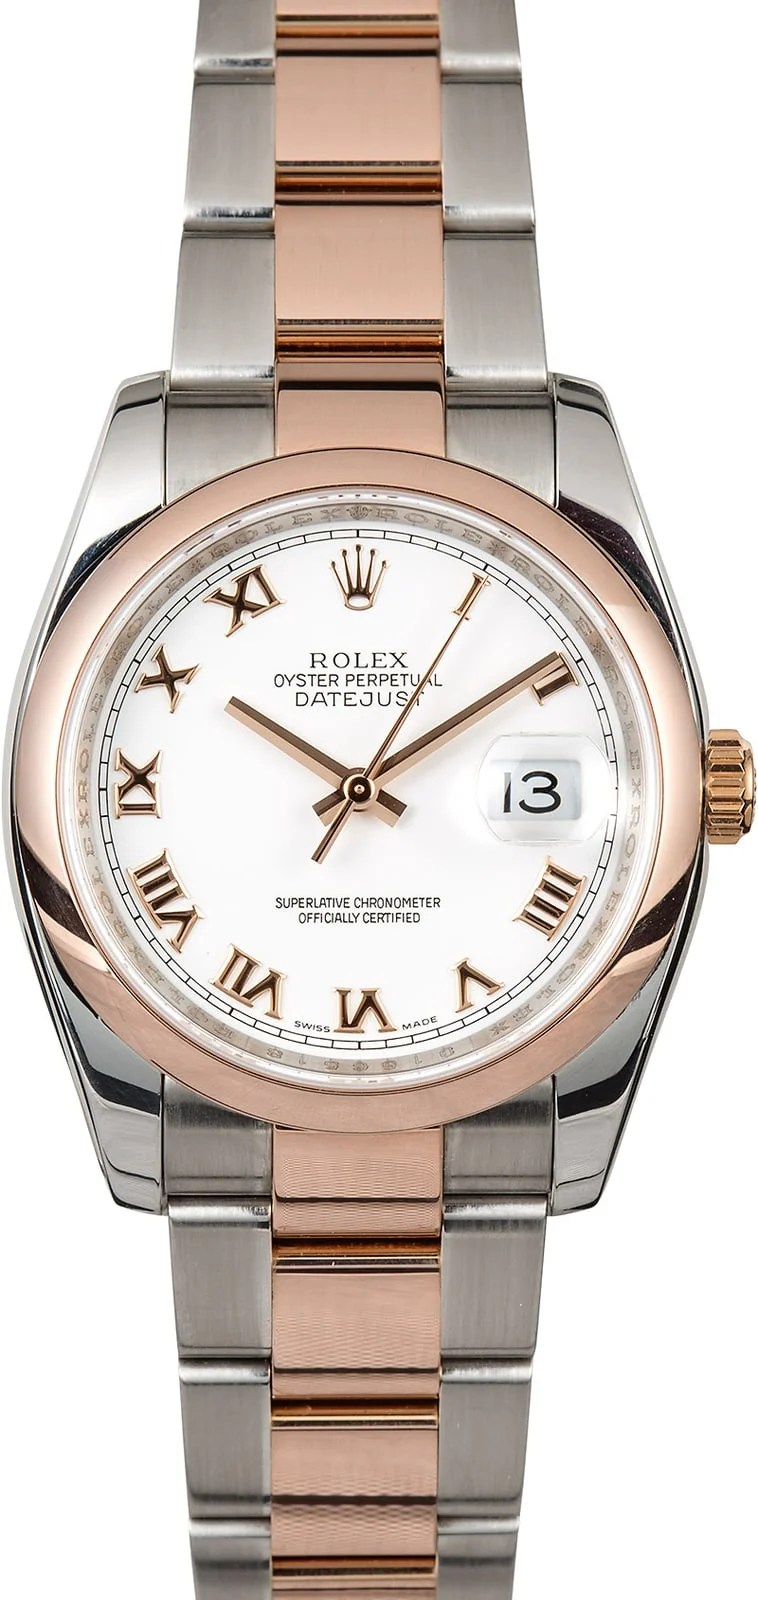 Rolex Oyster Perpetual Rose Gold Rolex Datejust 116201 Two Tone Rose Gold